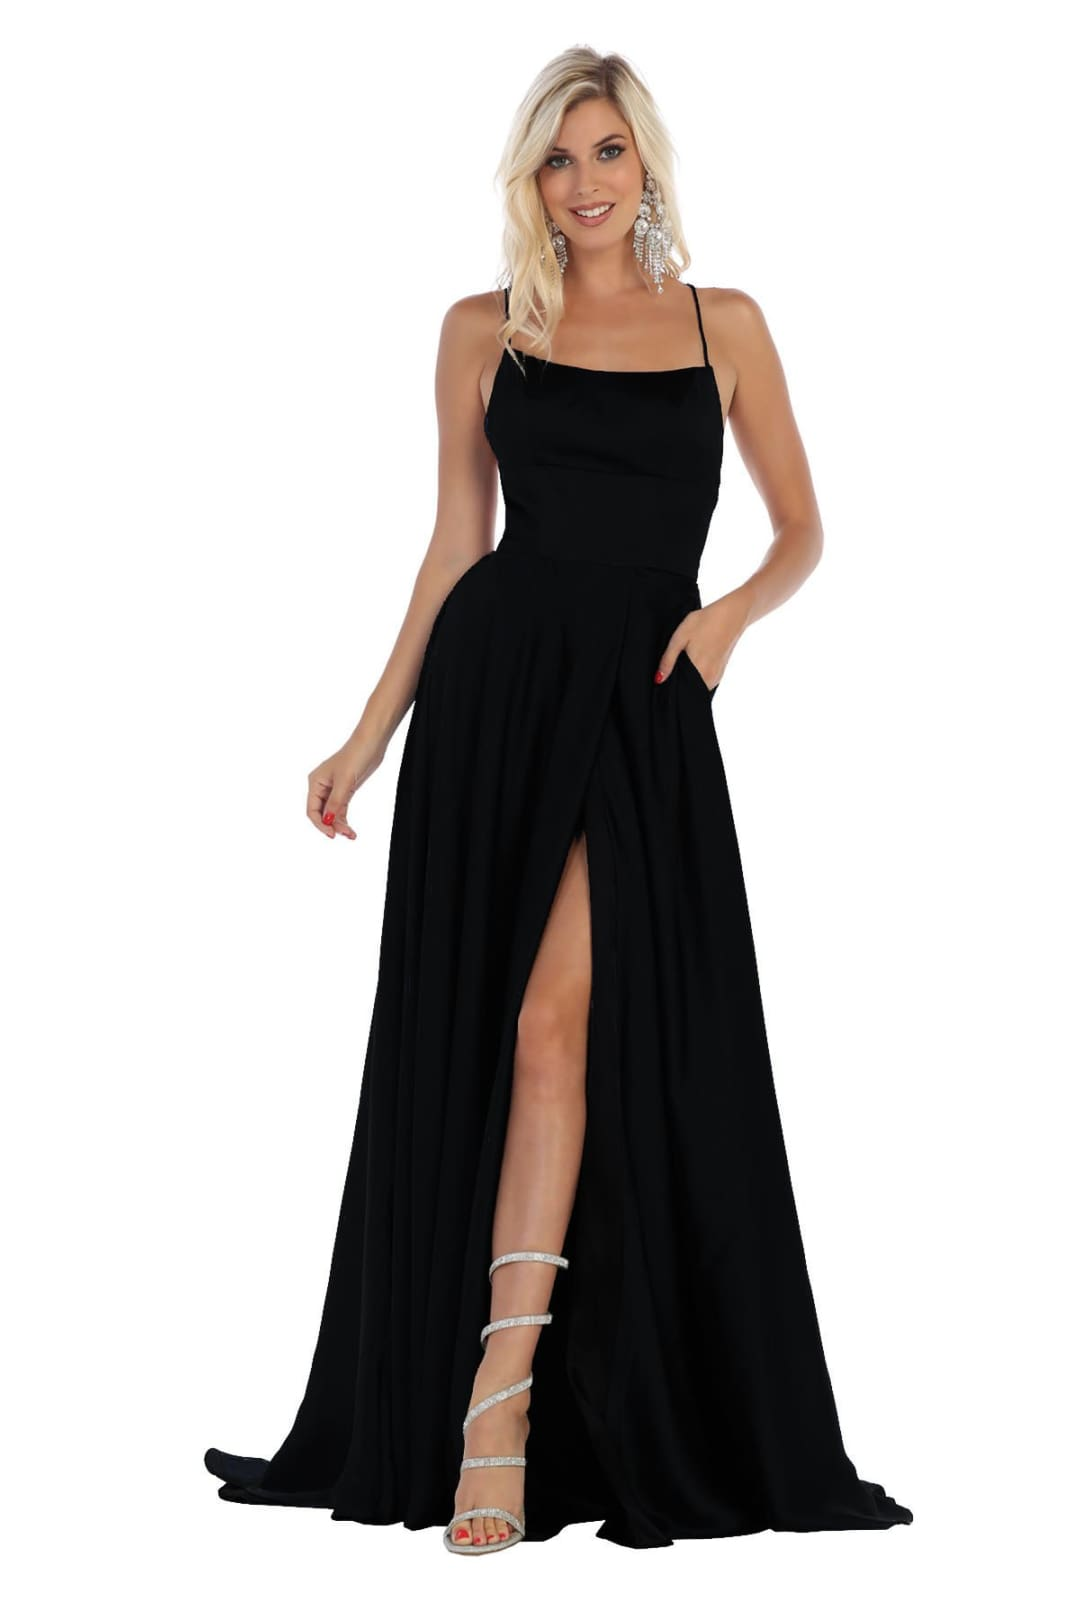 Sexy High Slit Dress - Black / 2